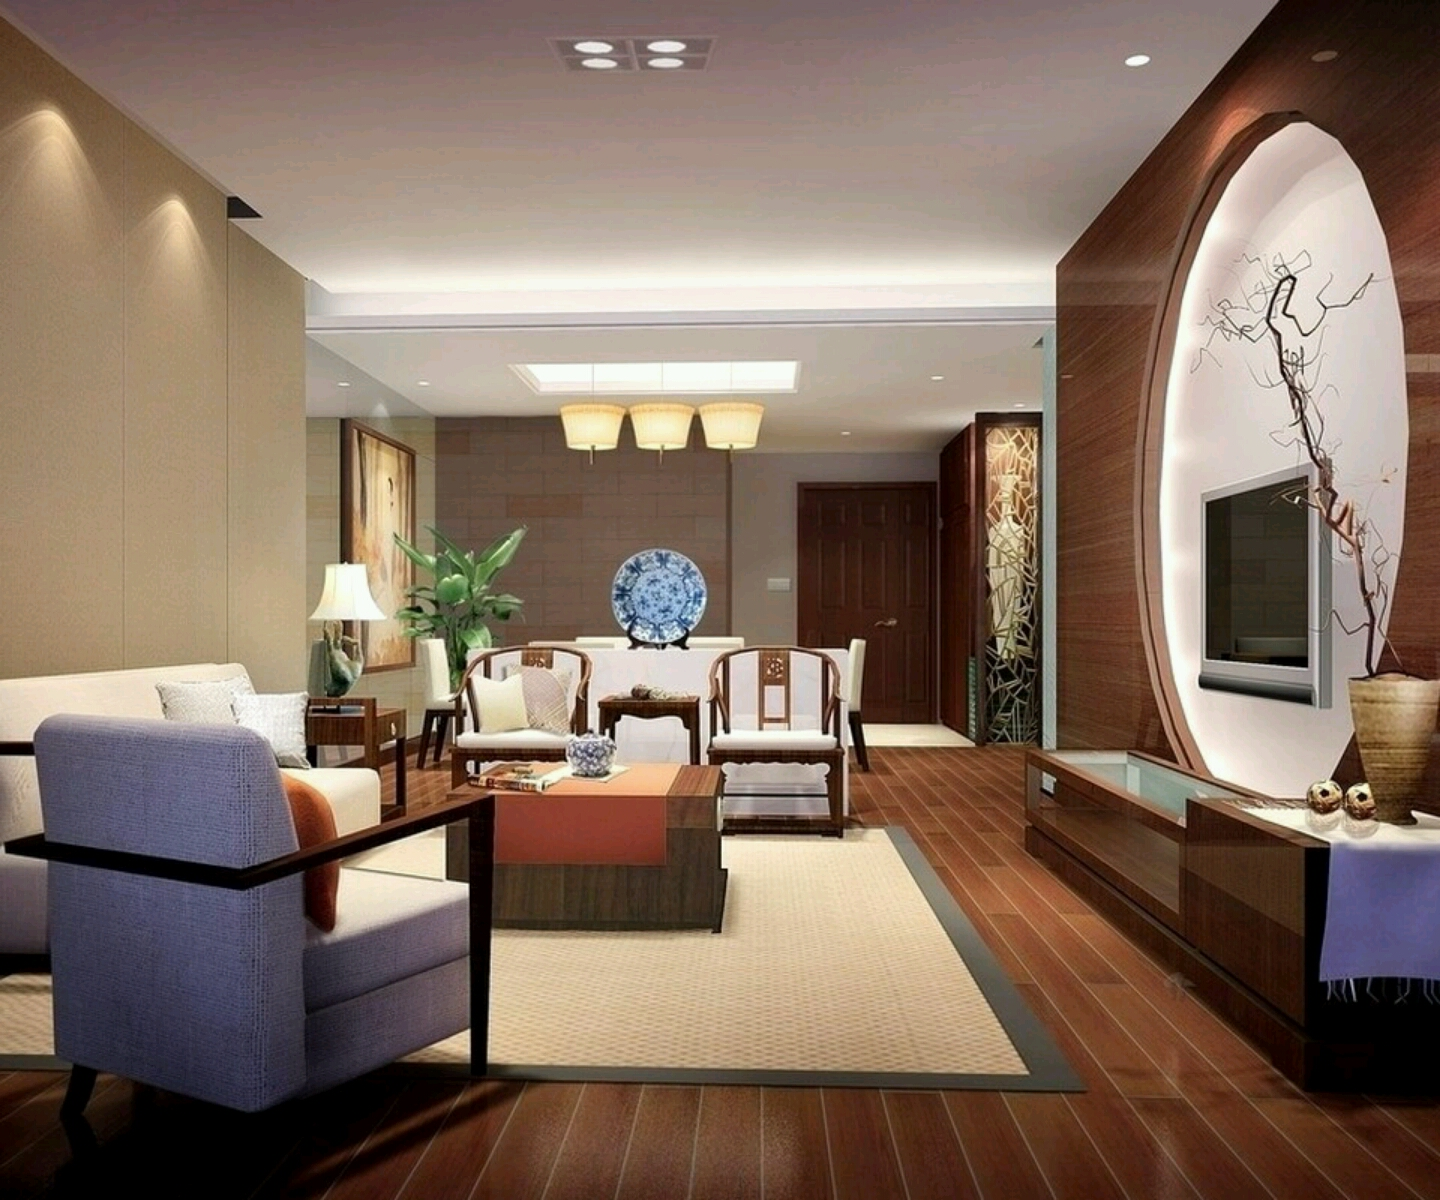 Luxury homes interior decoration living room designs ideas for Decoration house living room